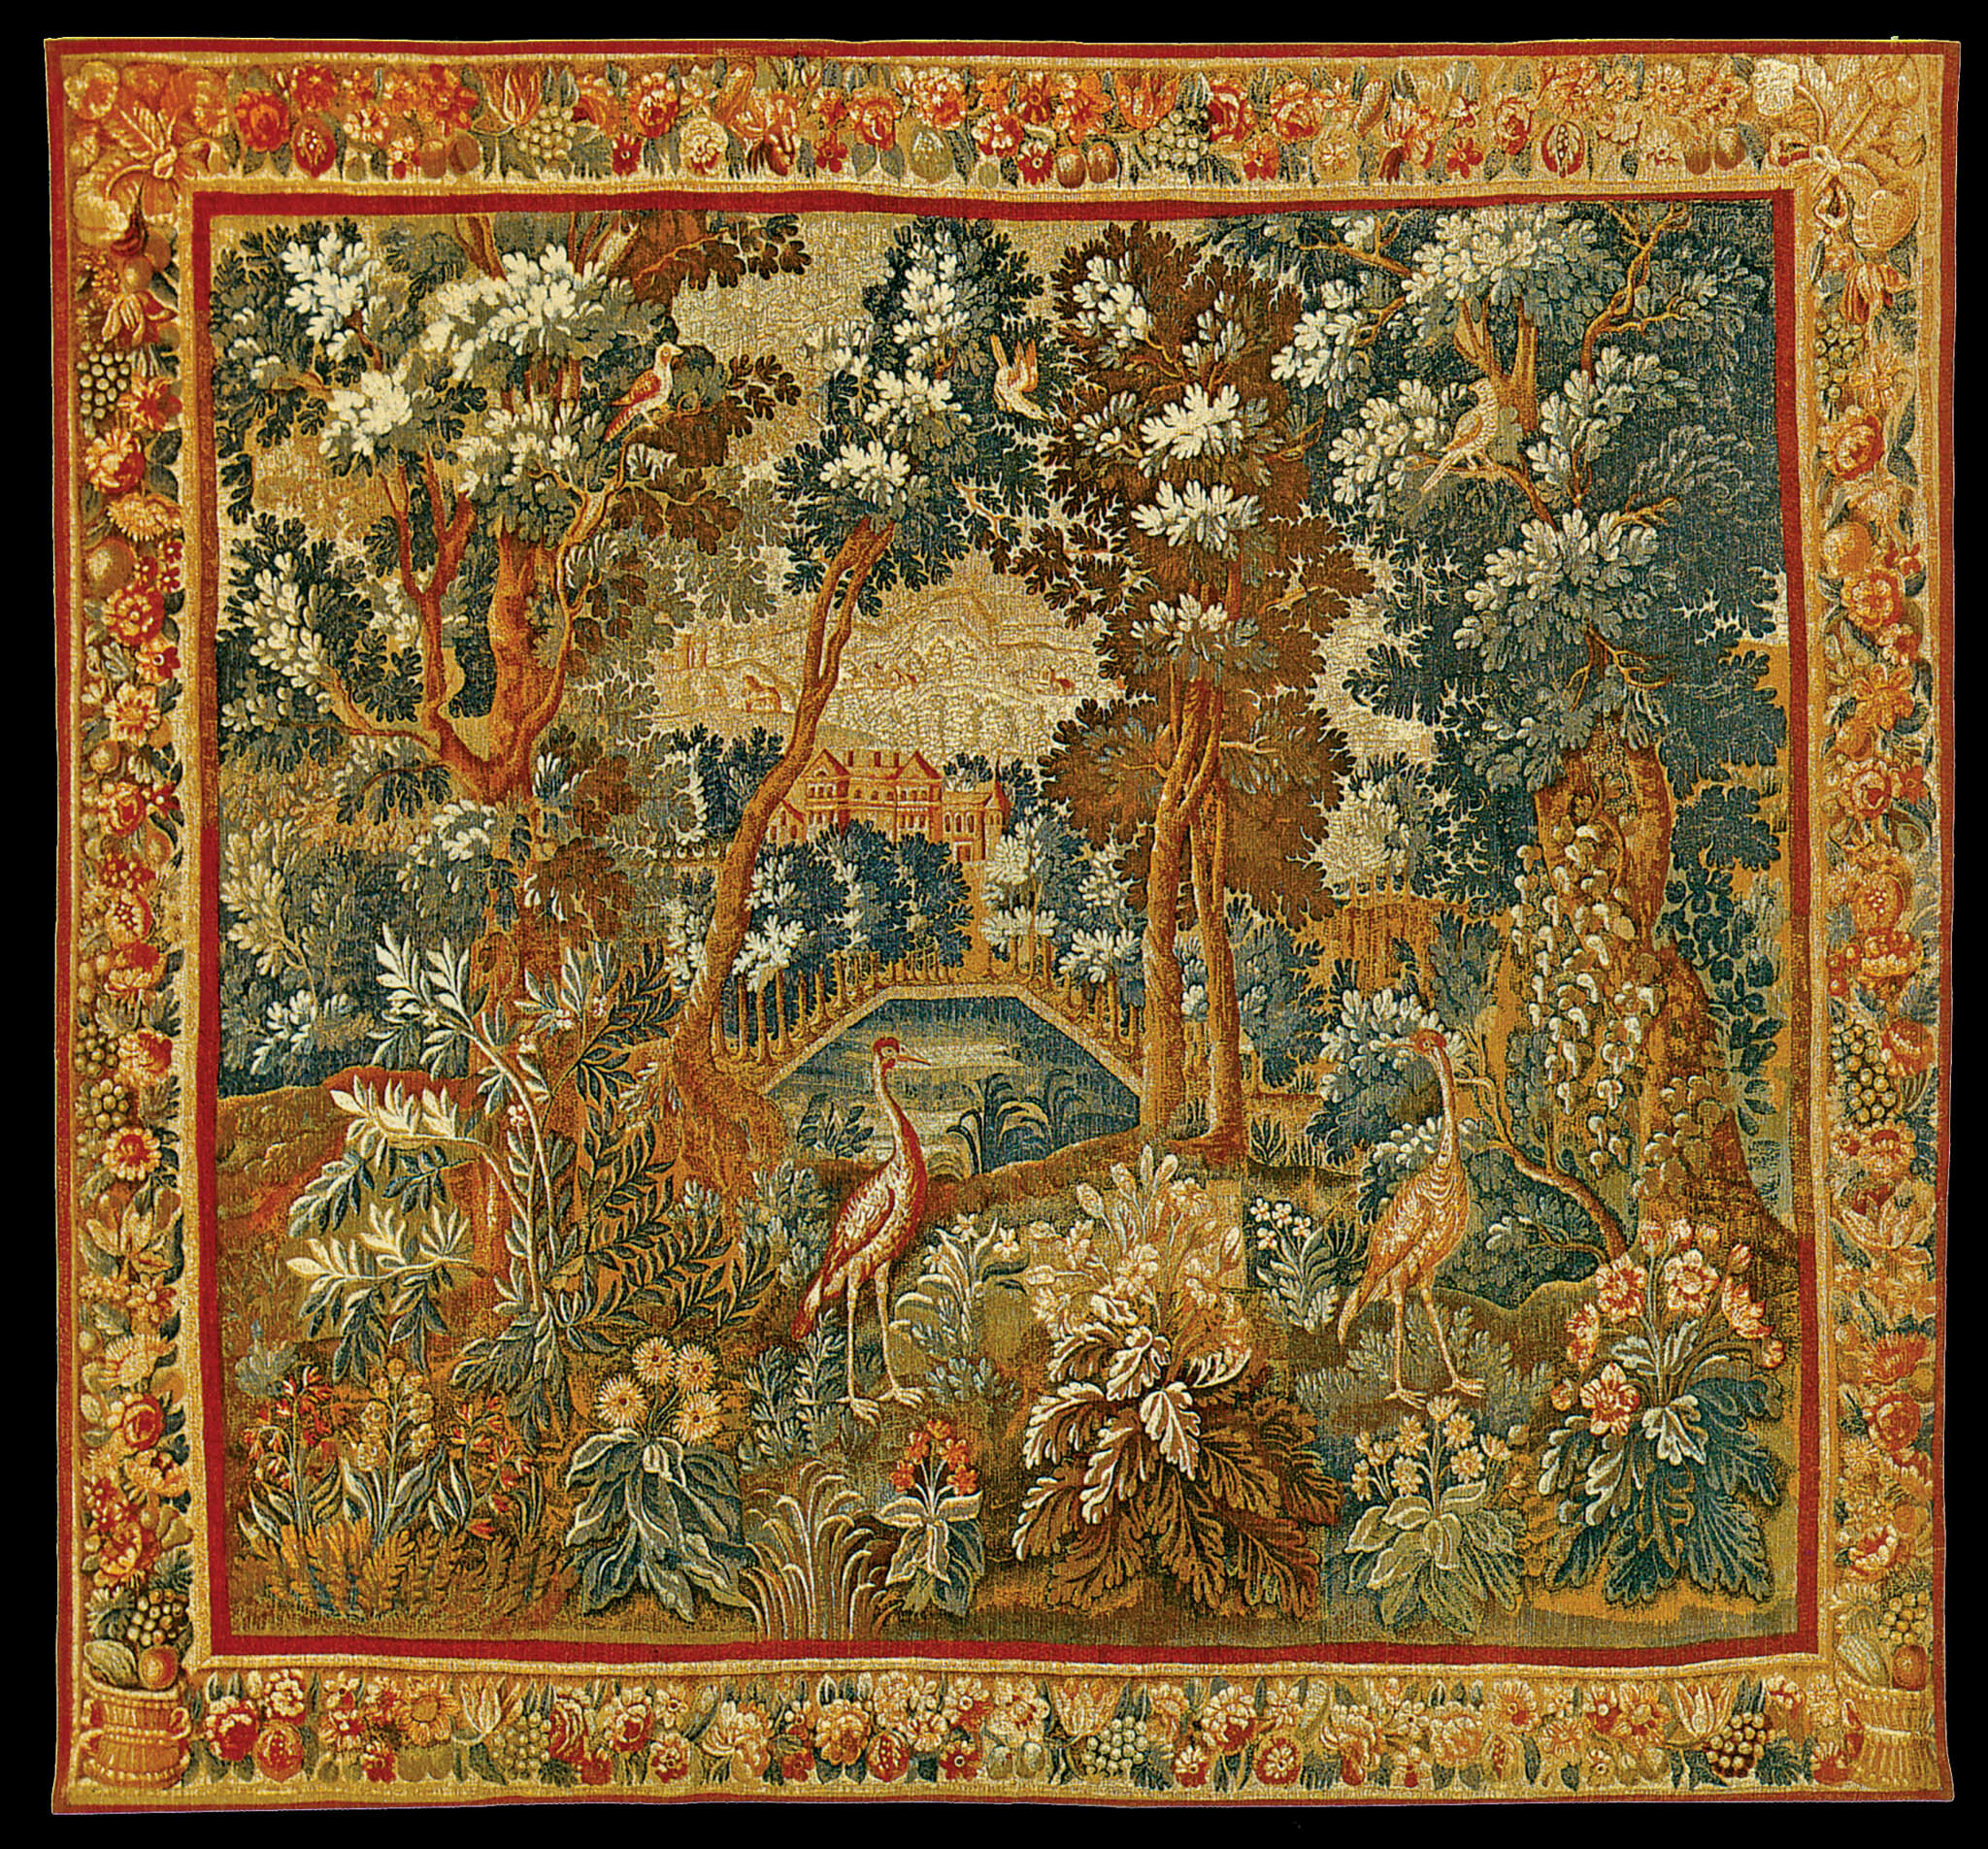 The Two Herons Tapestry With Regard To Best And Newest Blended Fabric Hidden Garden Chinoiserie Wall Hangings With Rod (View 8 of 20)